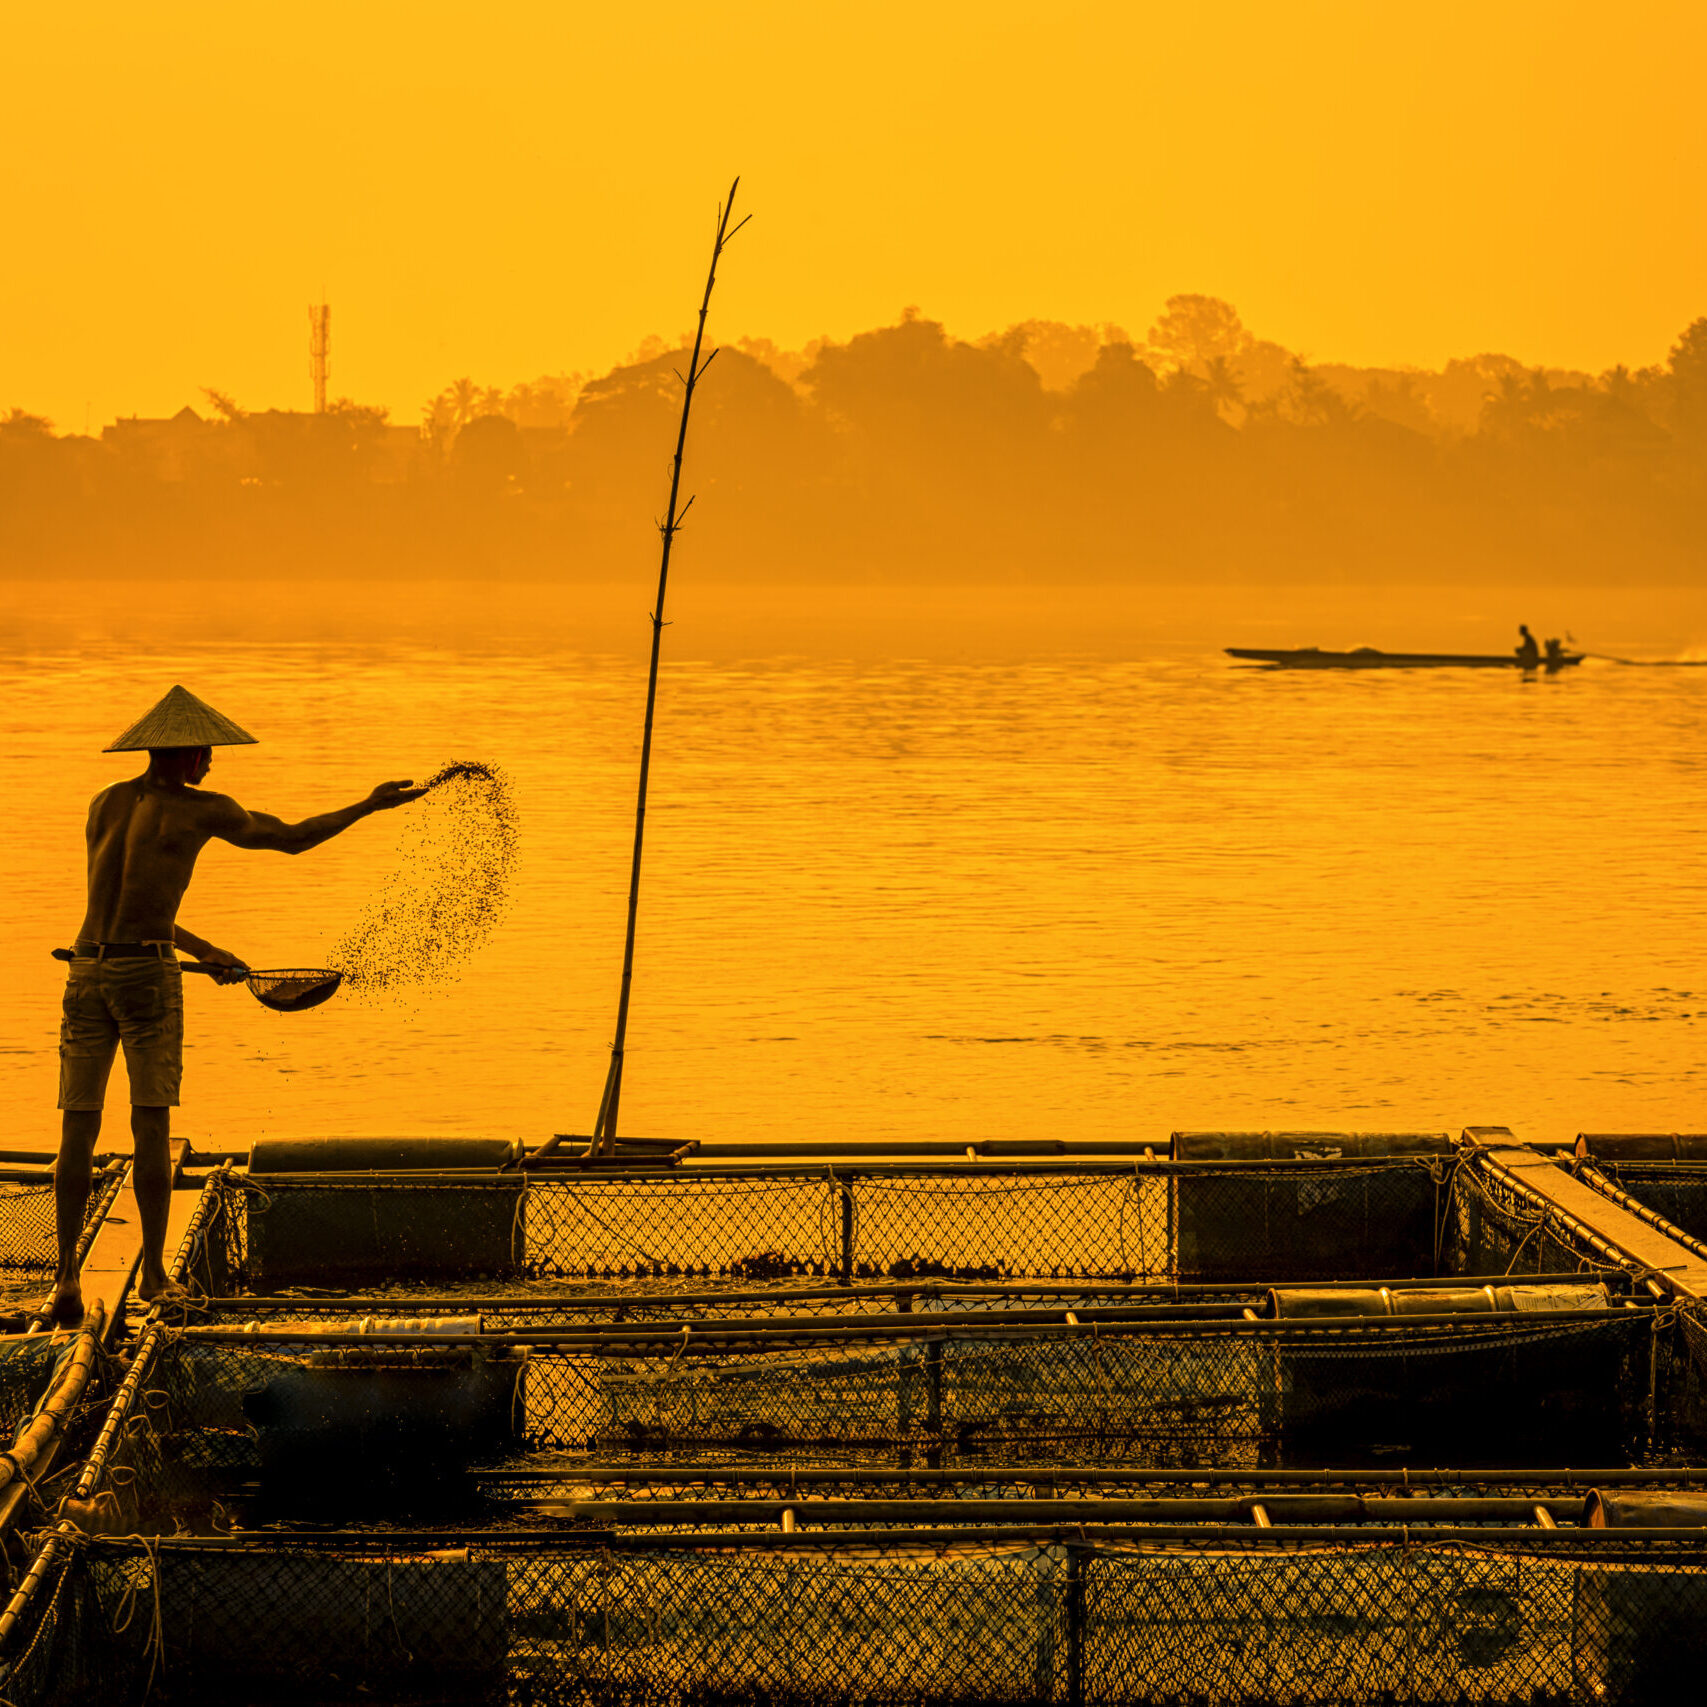 Fisherman feeds the fish in a commercial farm in Mekong river, Nongkhai. Farmers feeding fish in cages, Mekong River. The Tilapia for feeding fish in northeast of Thailand.